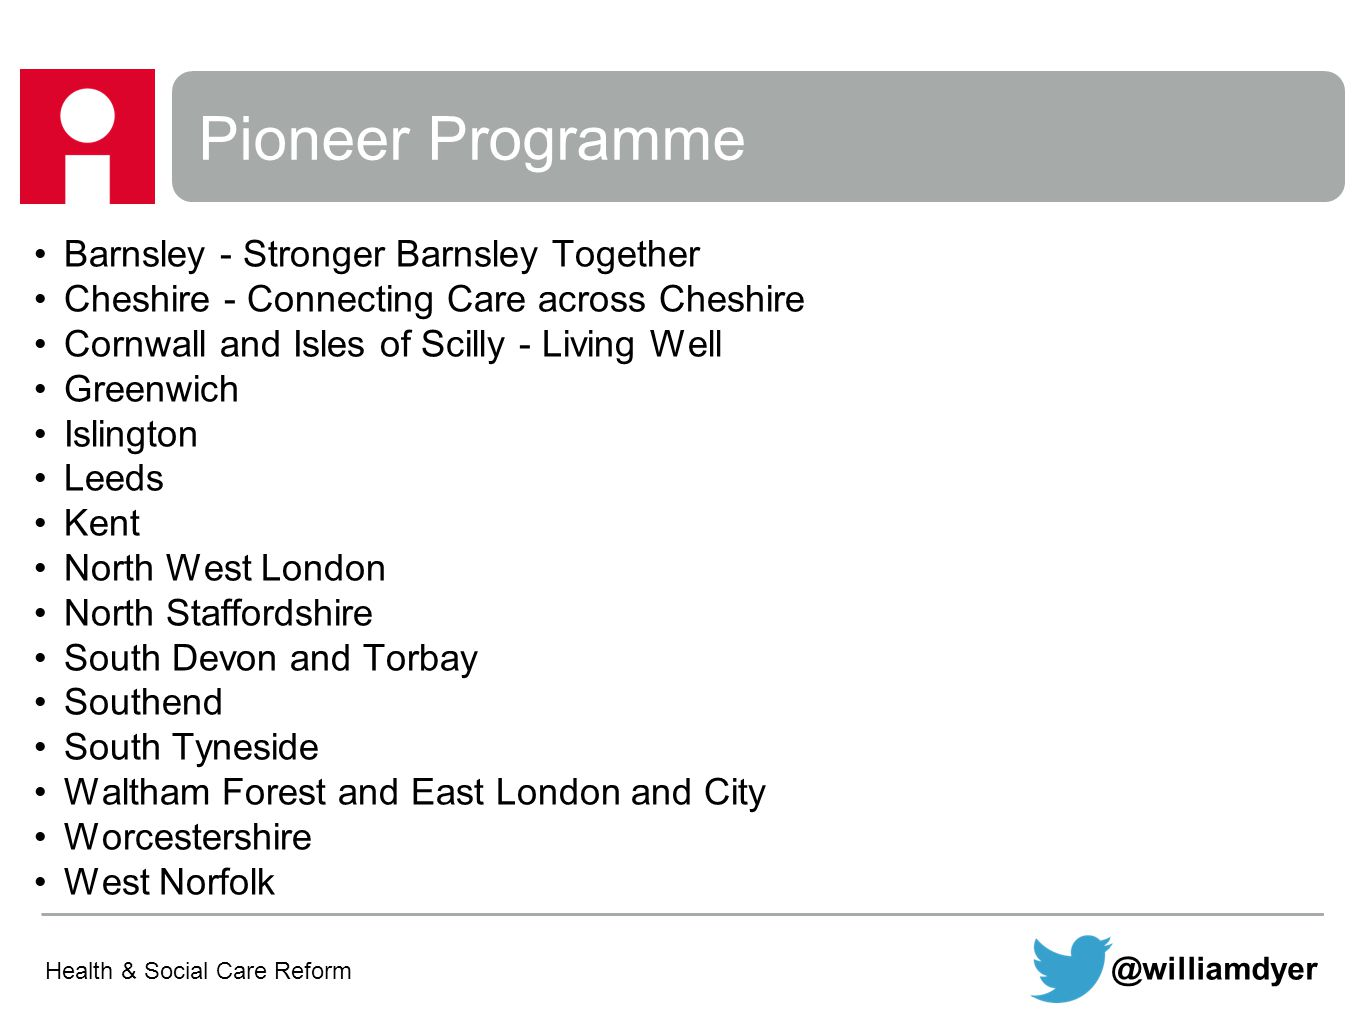 Pioneer Programme Barnsley - Stronger Barnsley Together Cheshire - Connecting Care across Cheshire Cornwall and Isles of Scilly - Living Well Greenwich Islington Leeds Kent North West London North Staffordshire South Devon and Torbay Southend South Tyneside Waltham Forest and East London and City Worcestershire West Norfolk Health & Social Care Reform @williamdyer